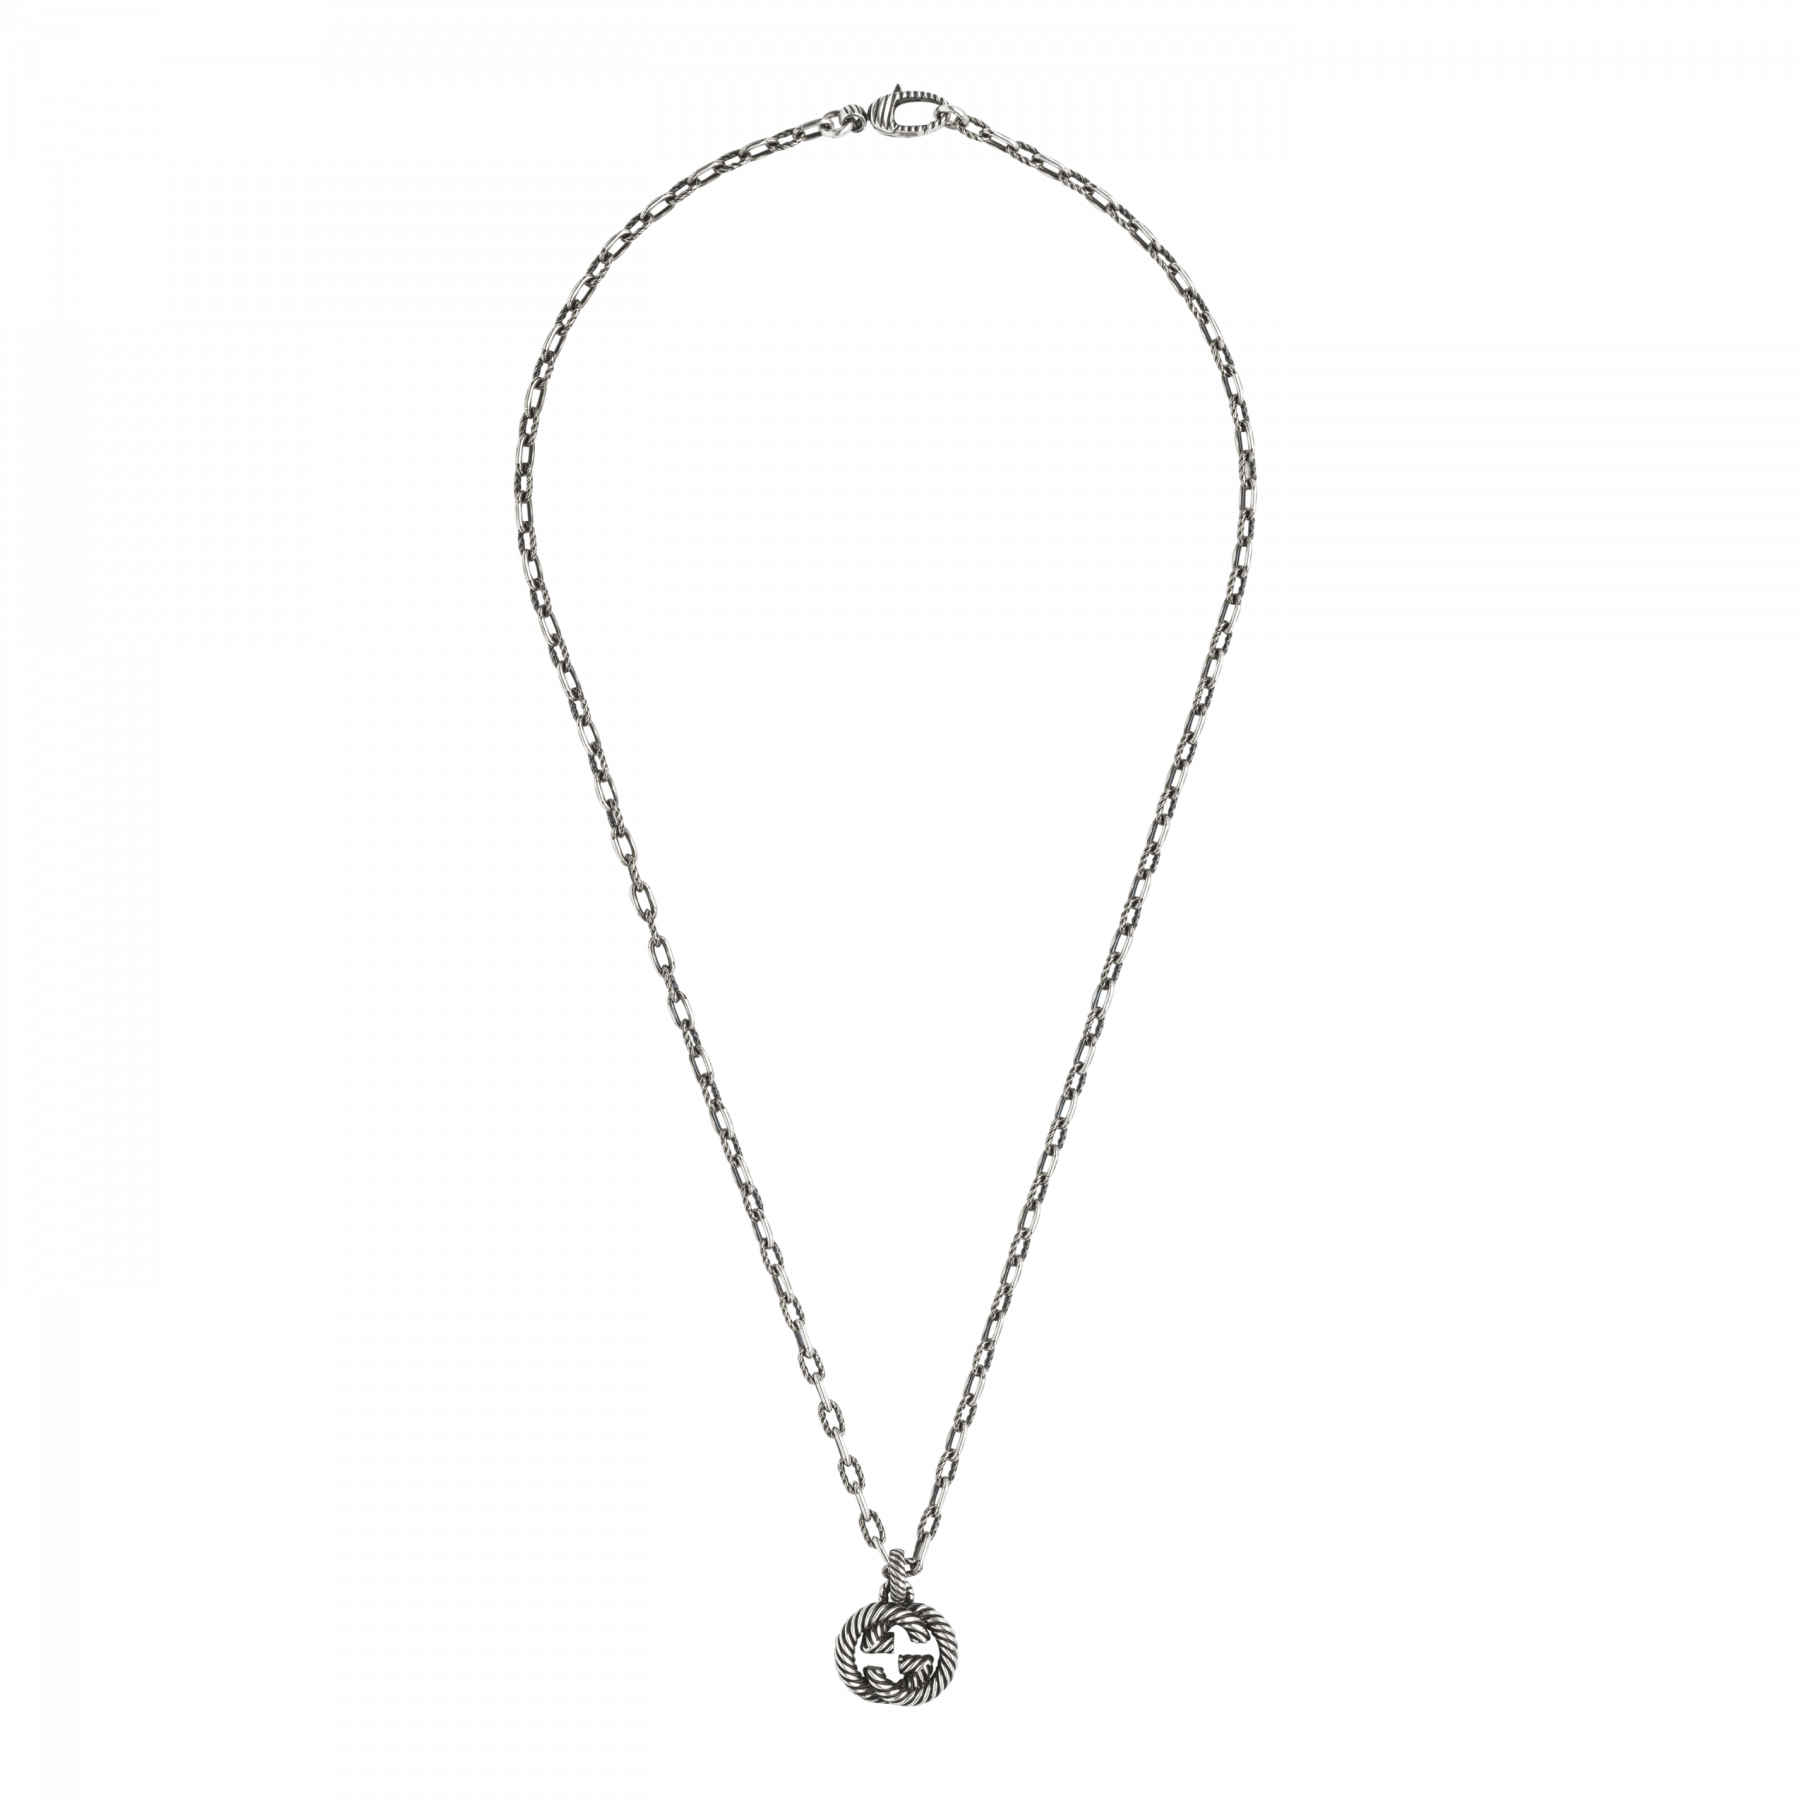 Gucci Interlocking G Long Link Necklace in Sterling Silver main view